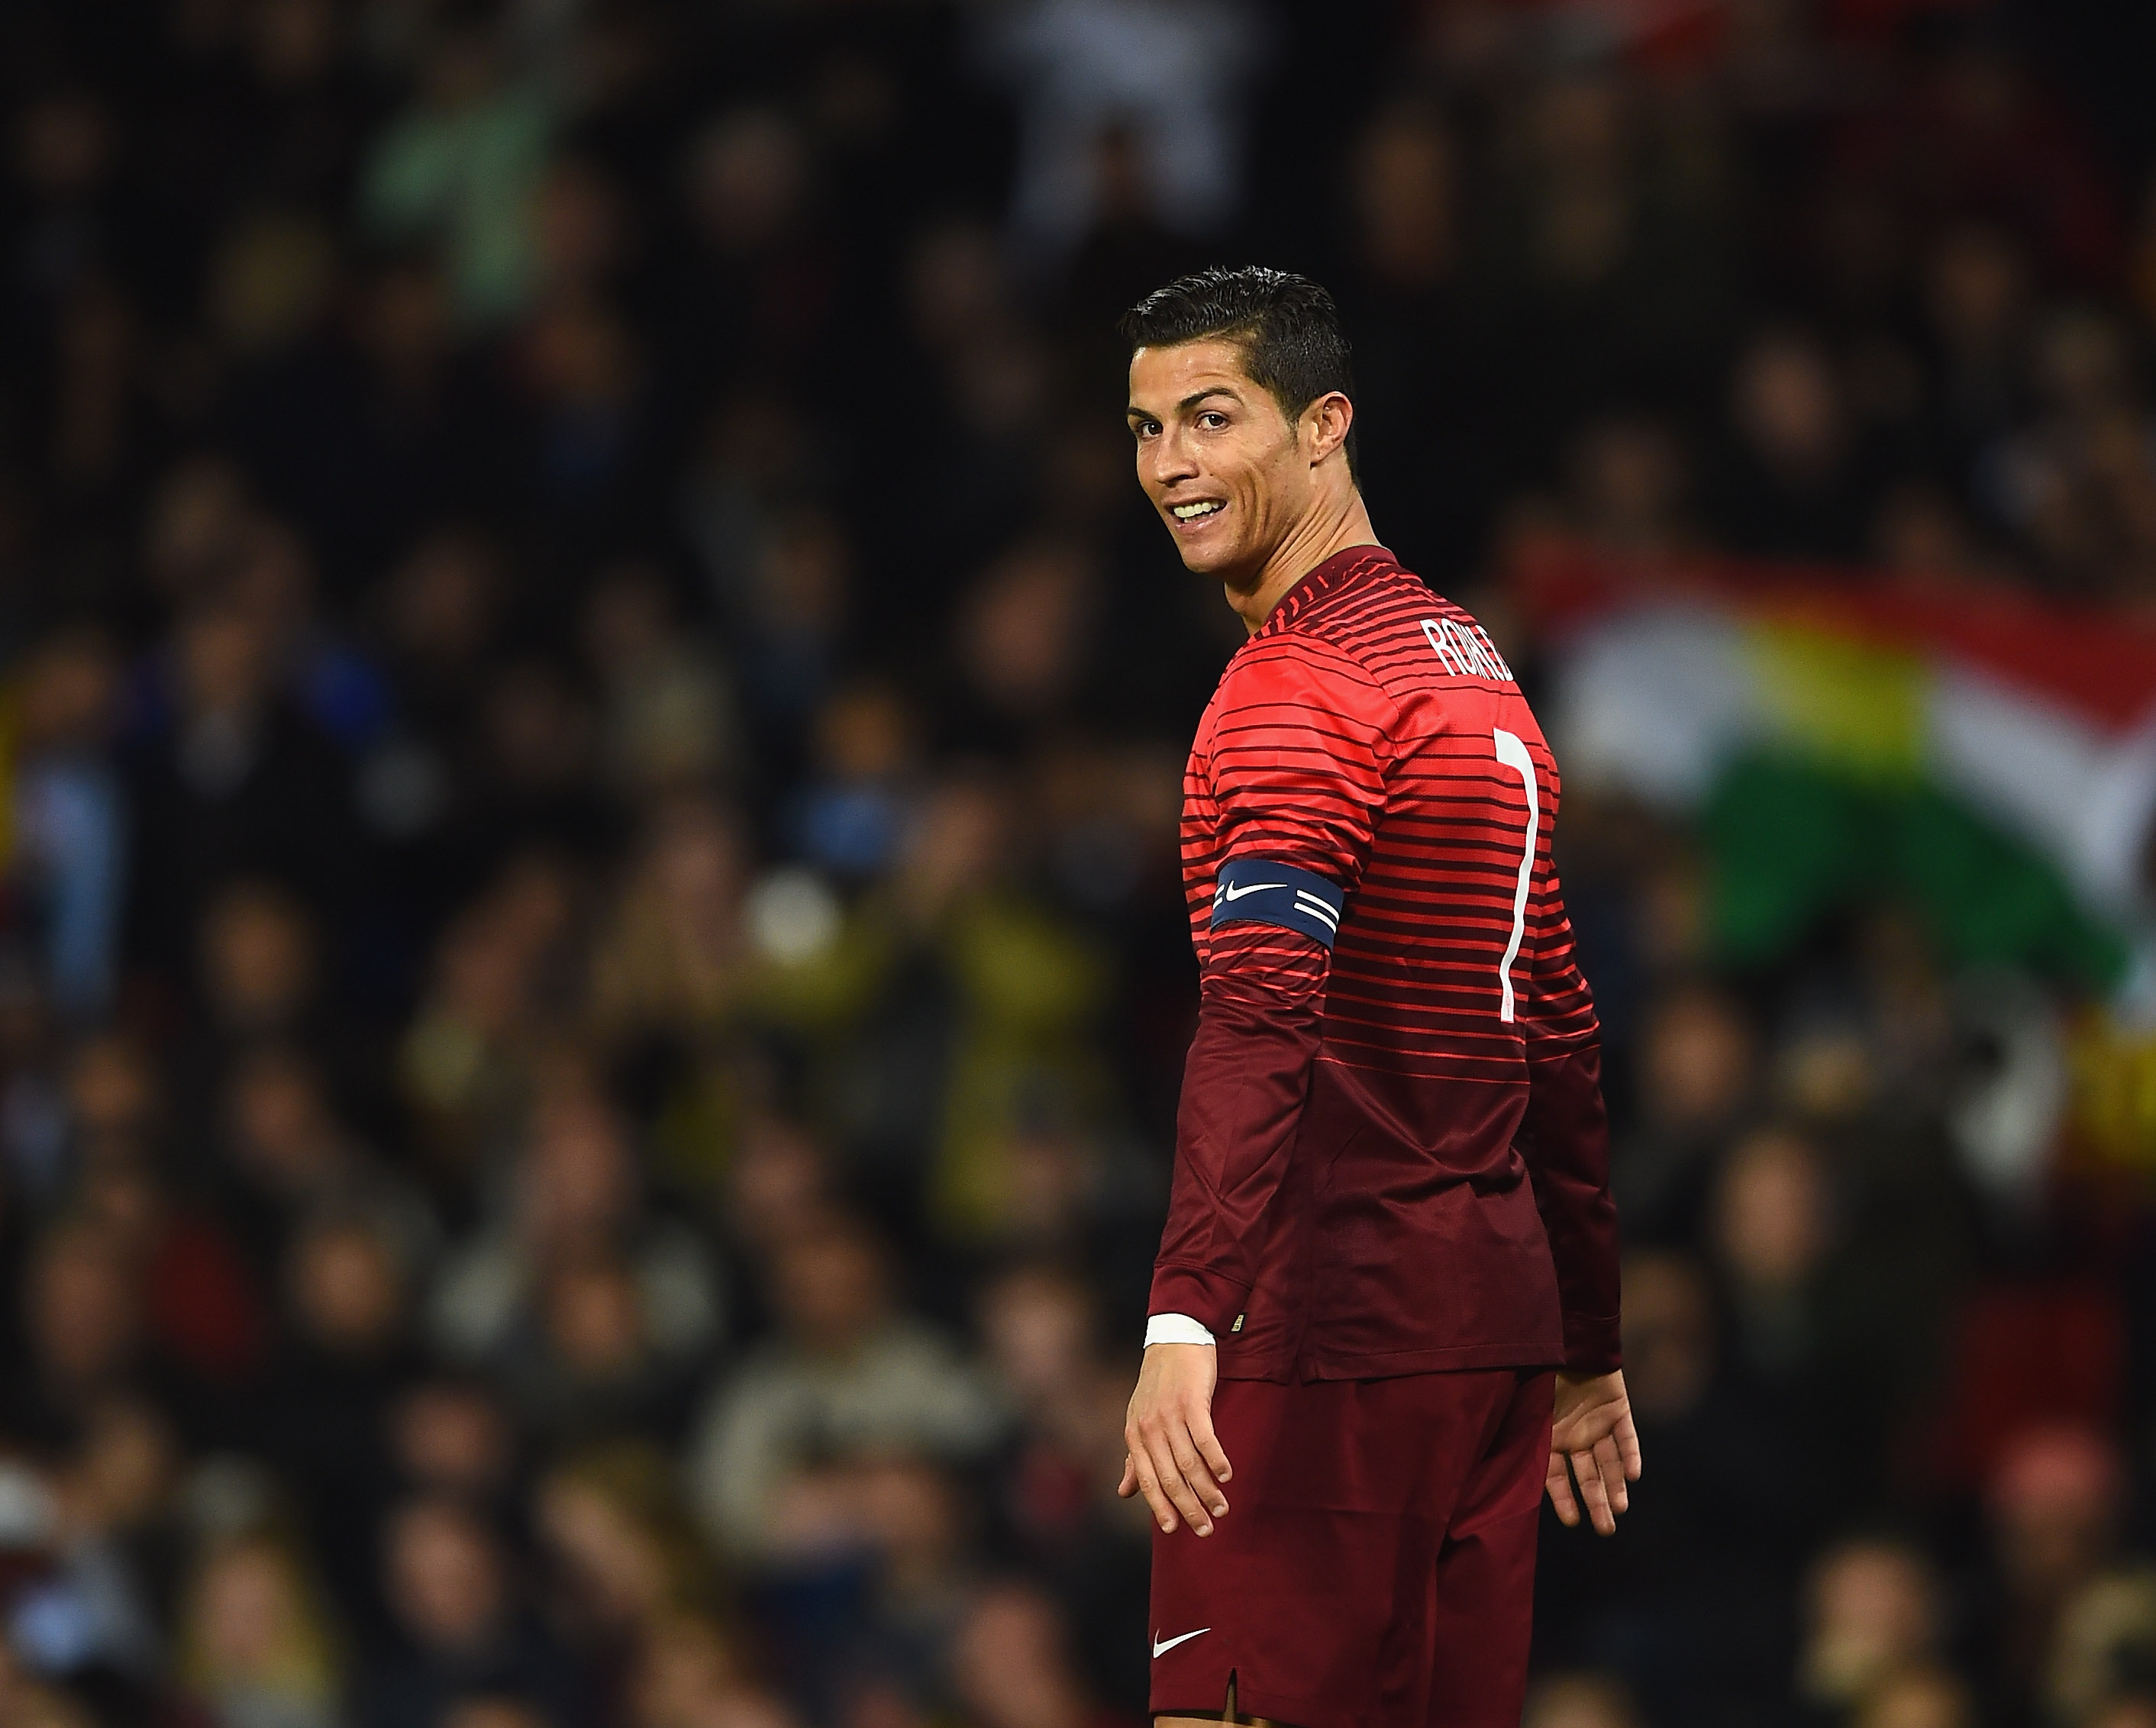 'Phenomenal' Ronaldo doesn't need Euro trophy to prove his greatness, says Gary Lineker